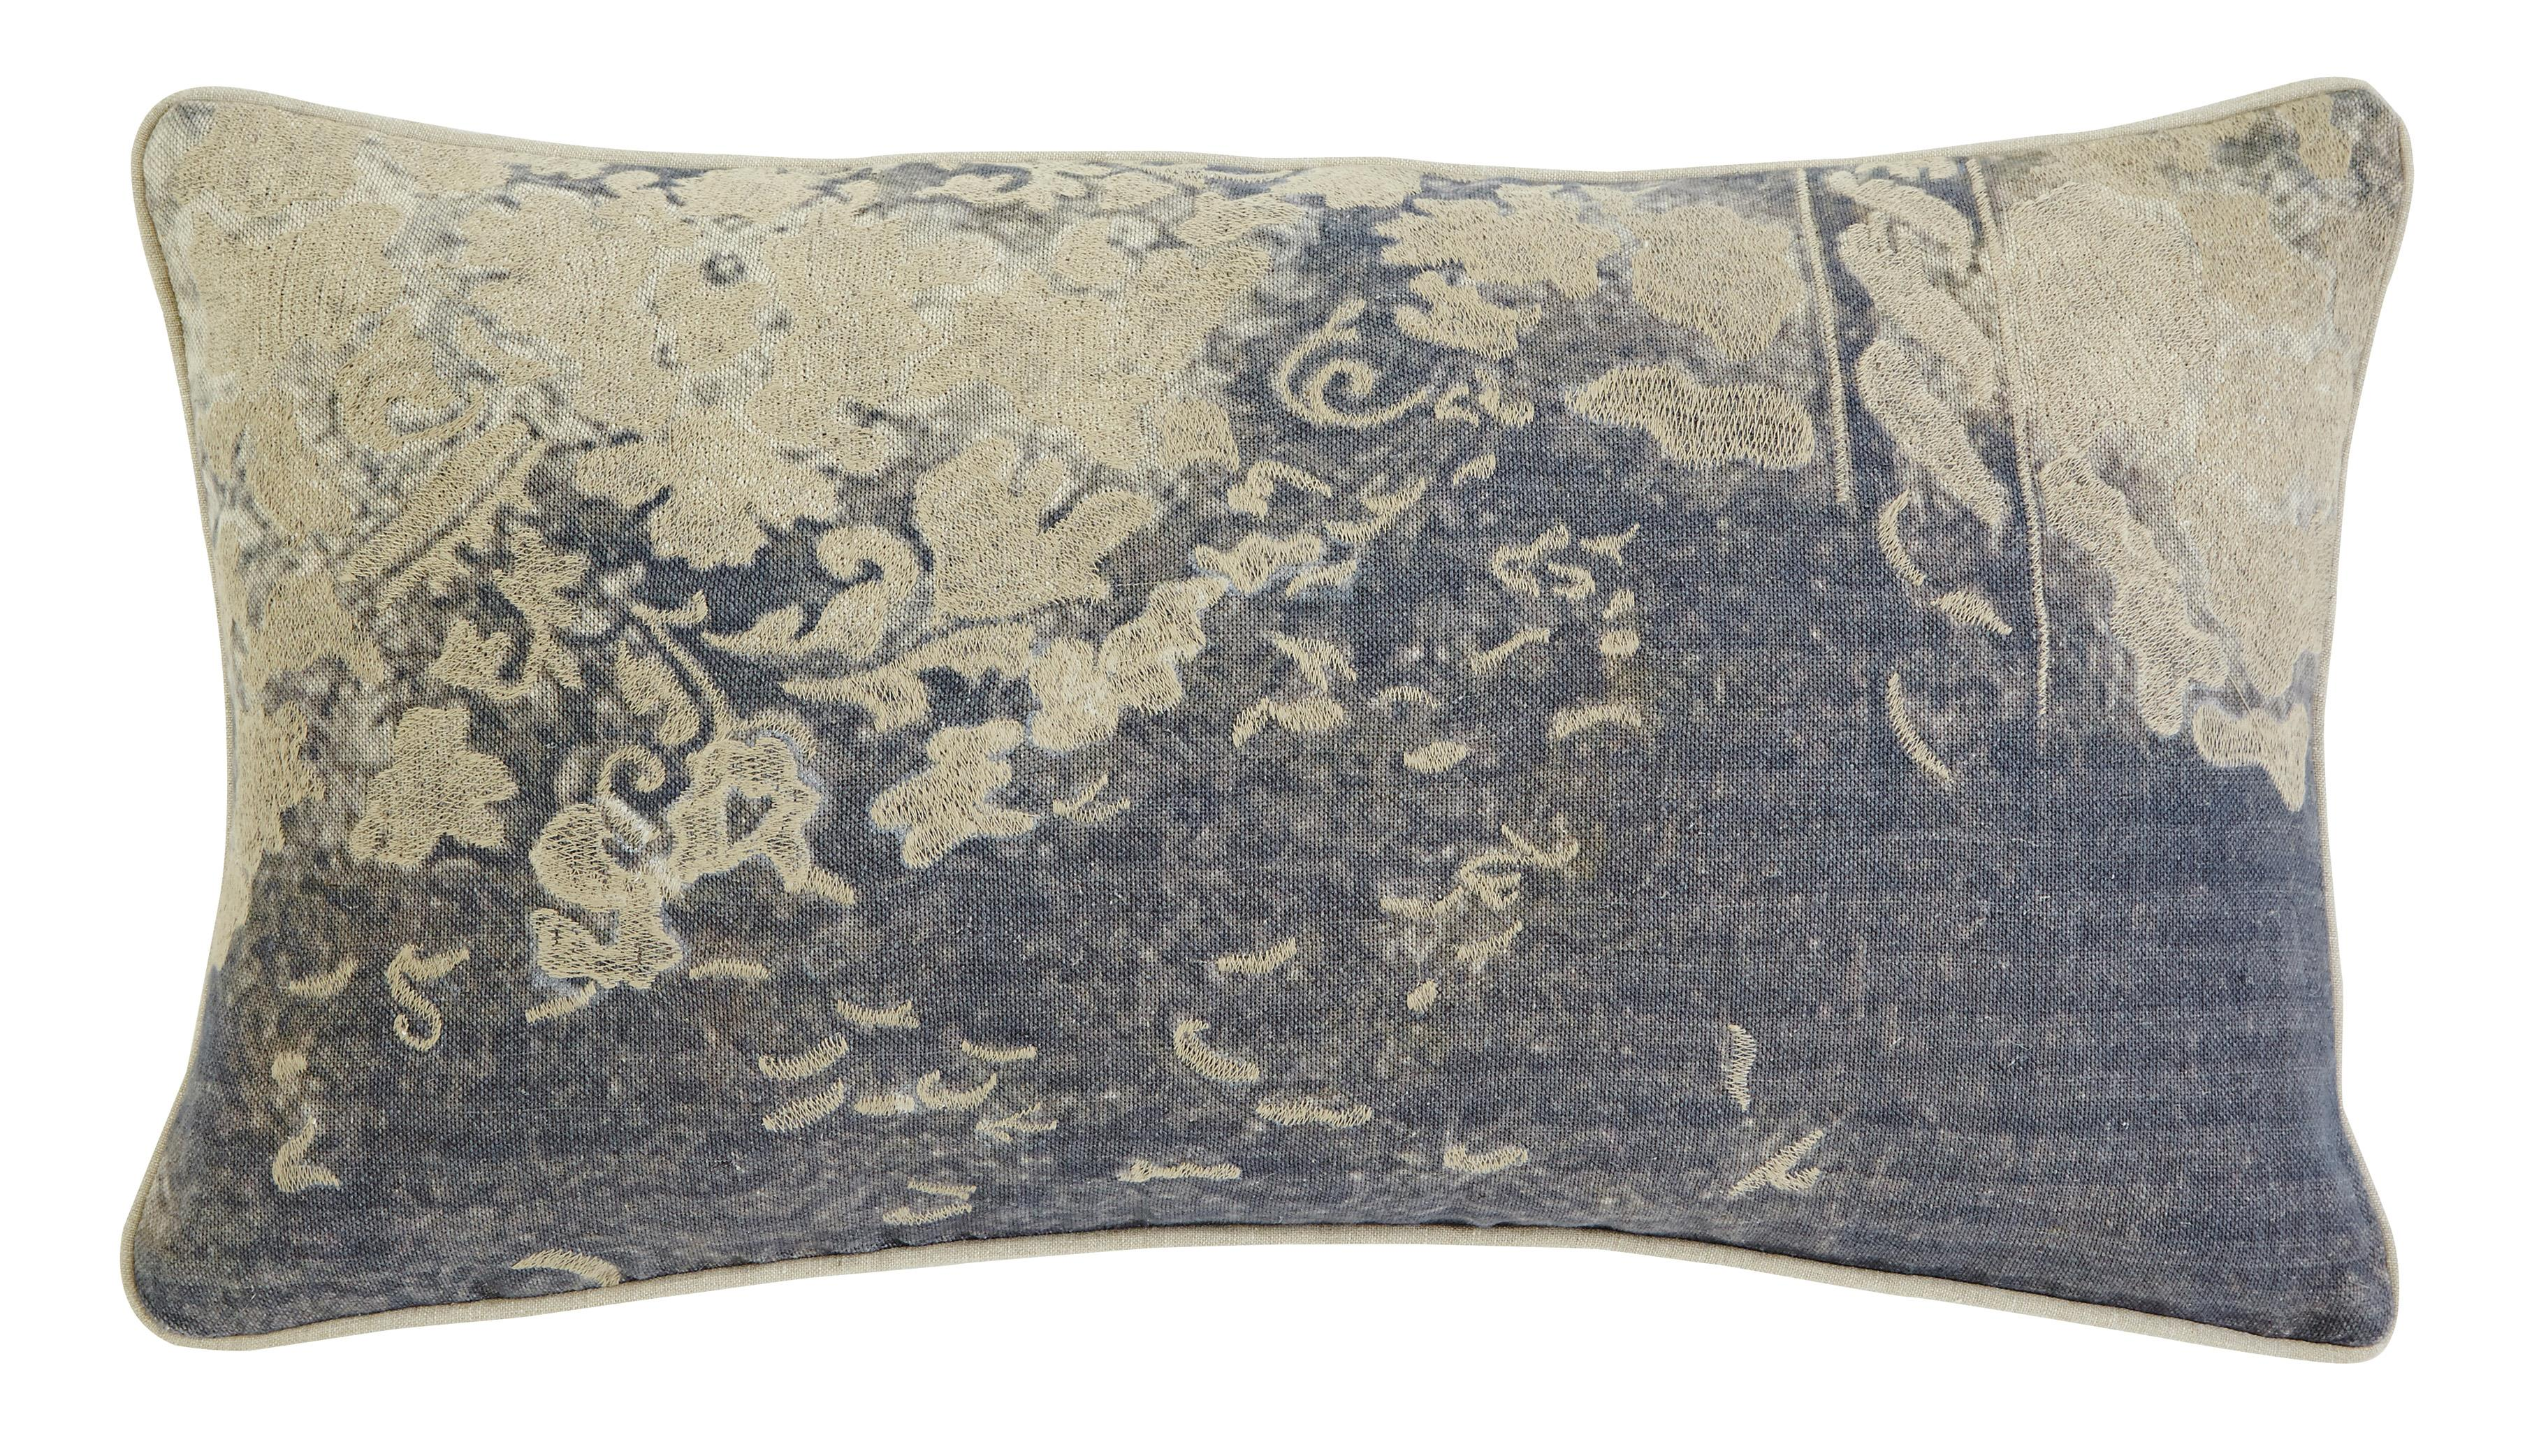 Signature Design by Ashley Pillows Patterned - Gray Lumbar Pillow - Item Number: A1000275P